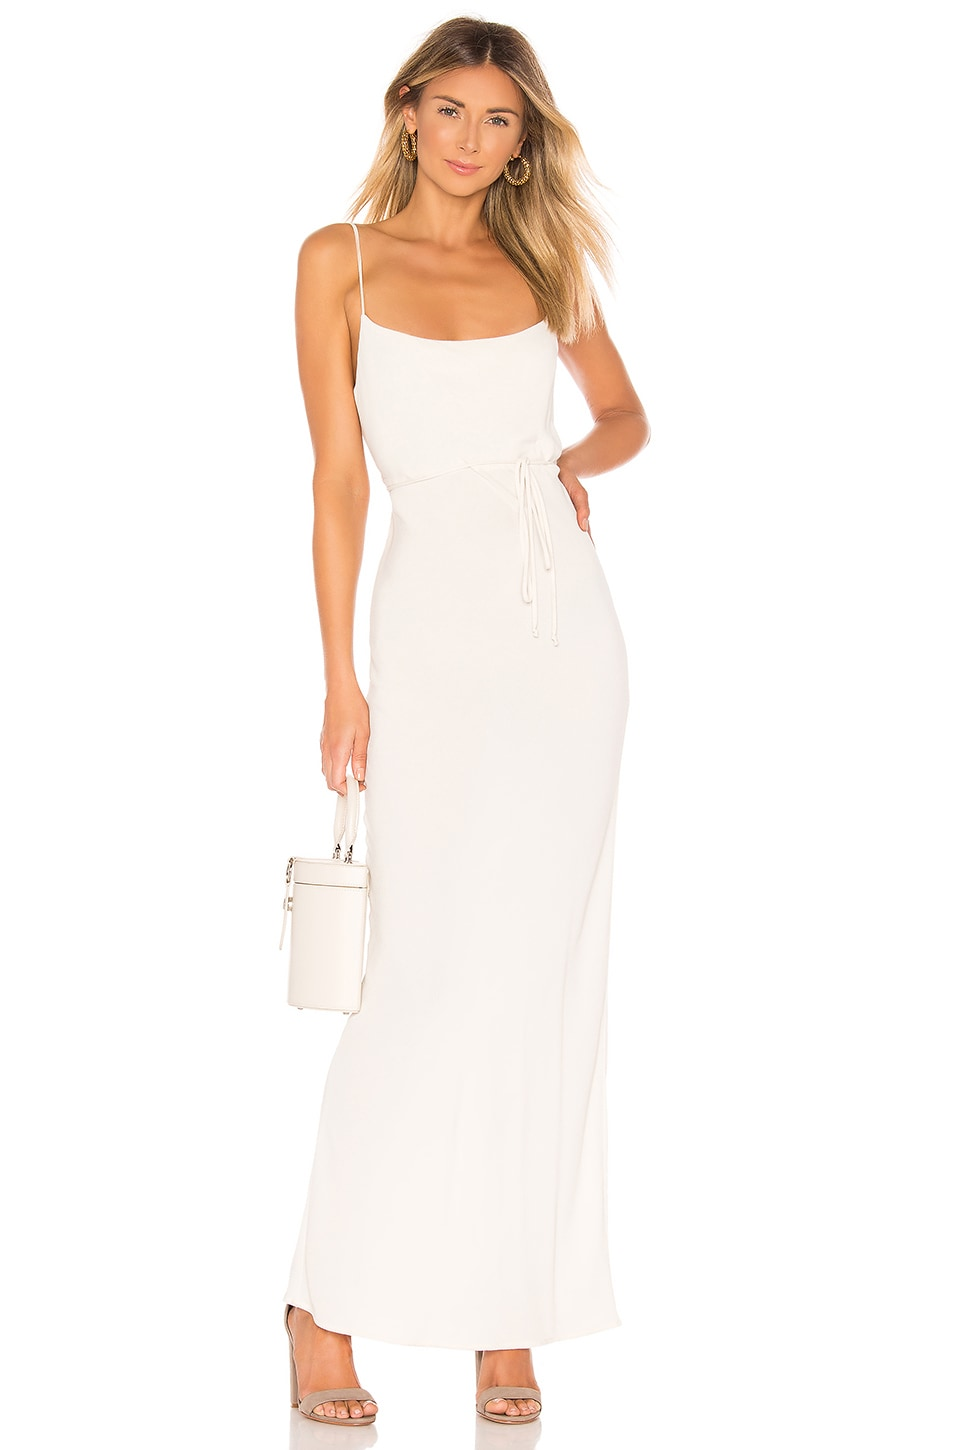 FLYNN SKYE Jackie Slip Dress in Creme Brulee